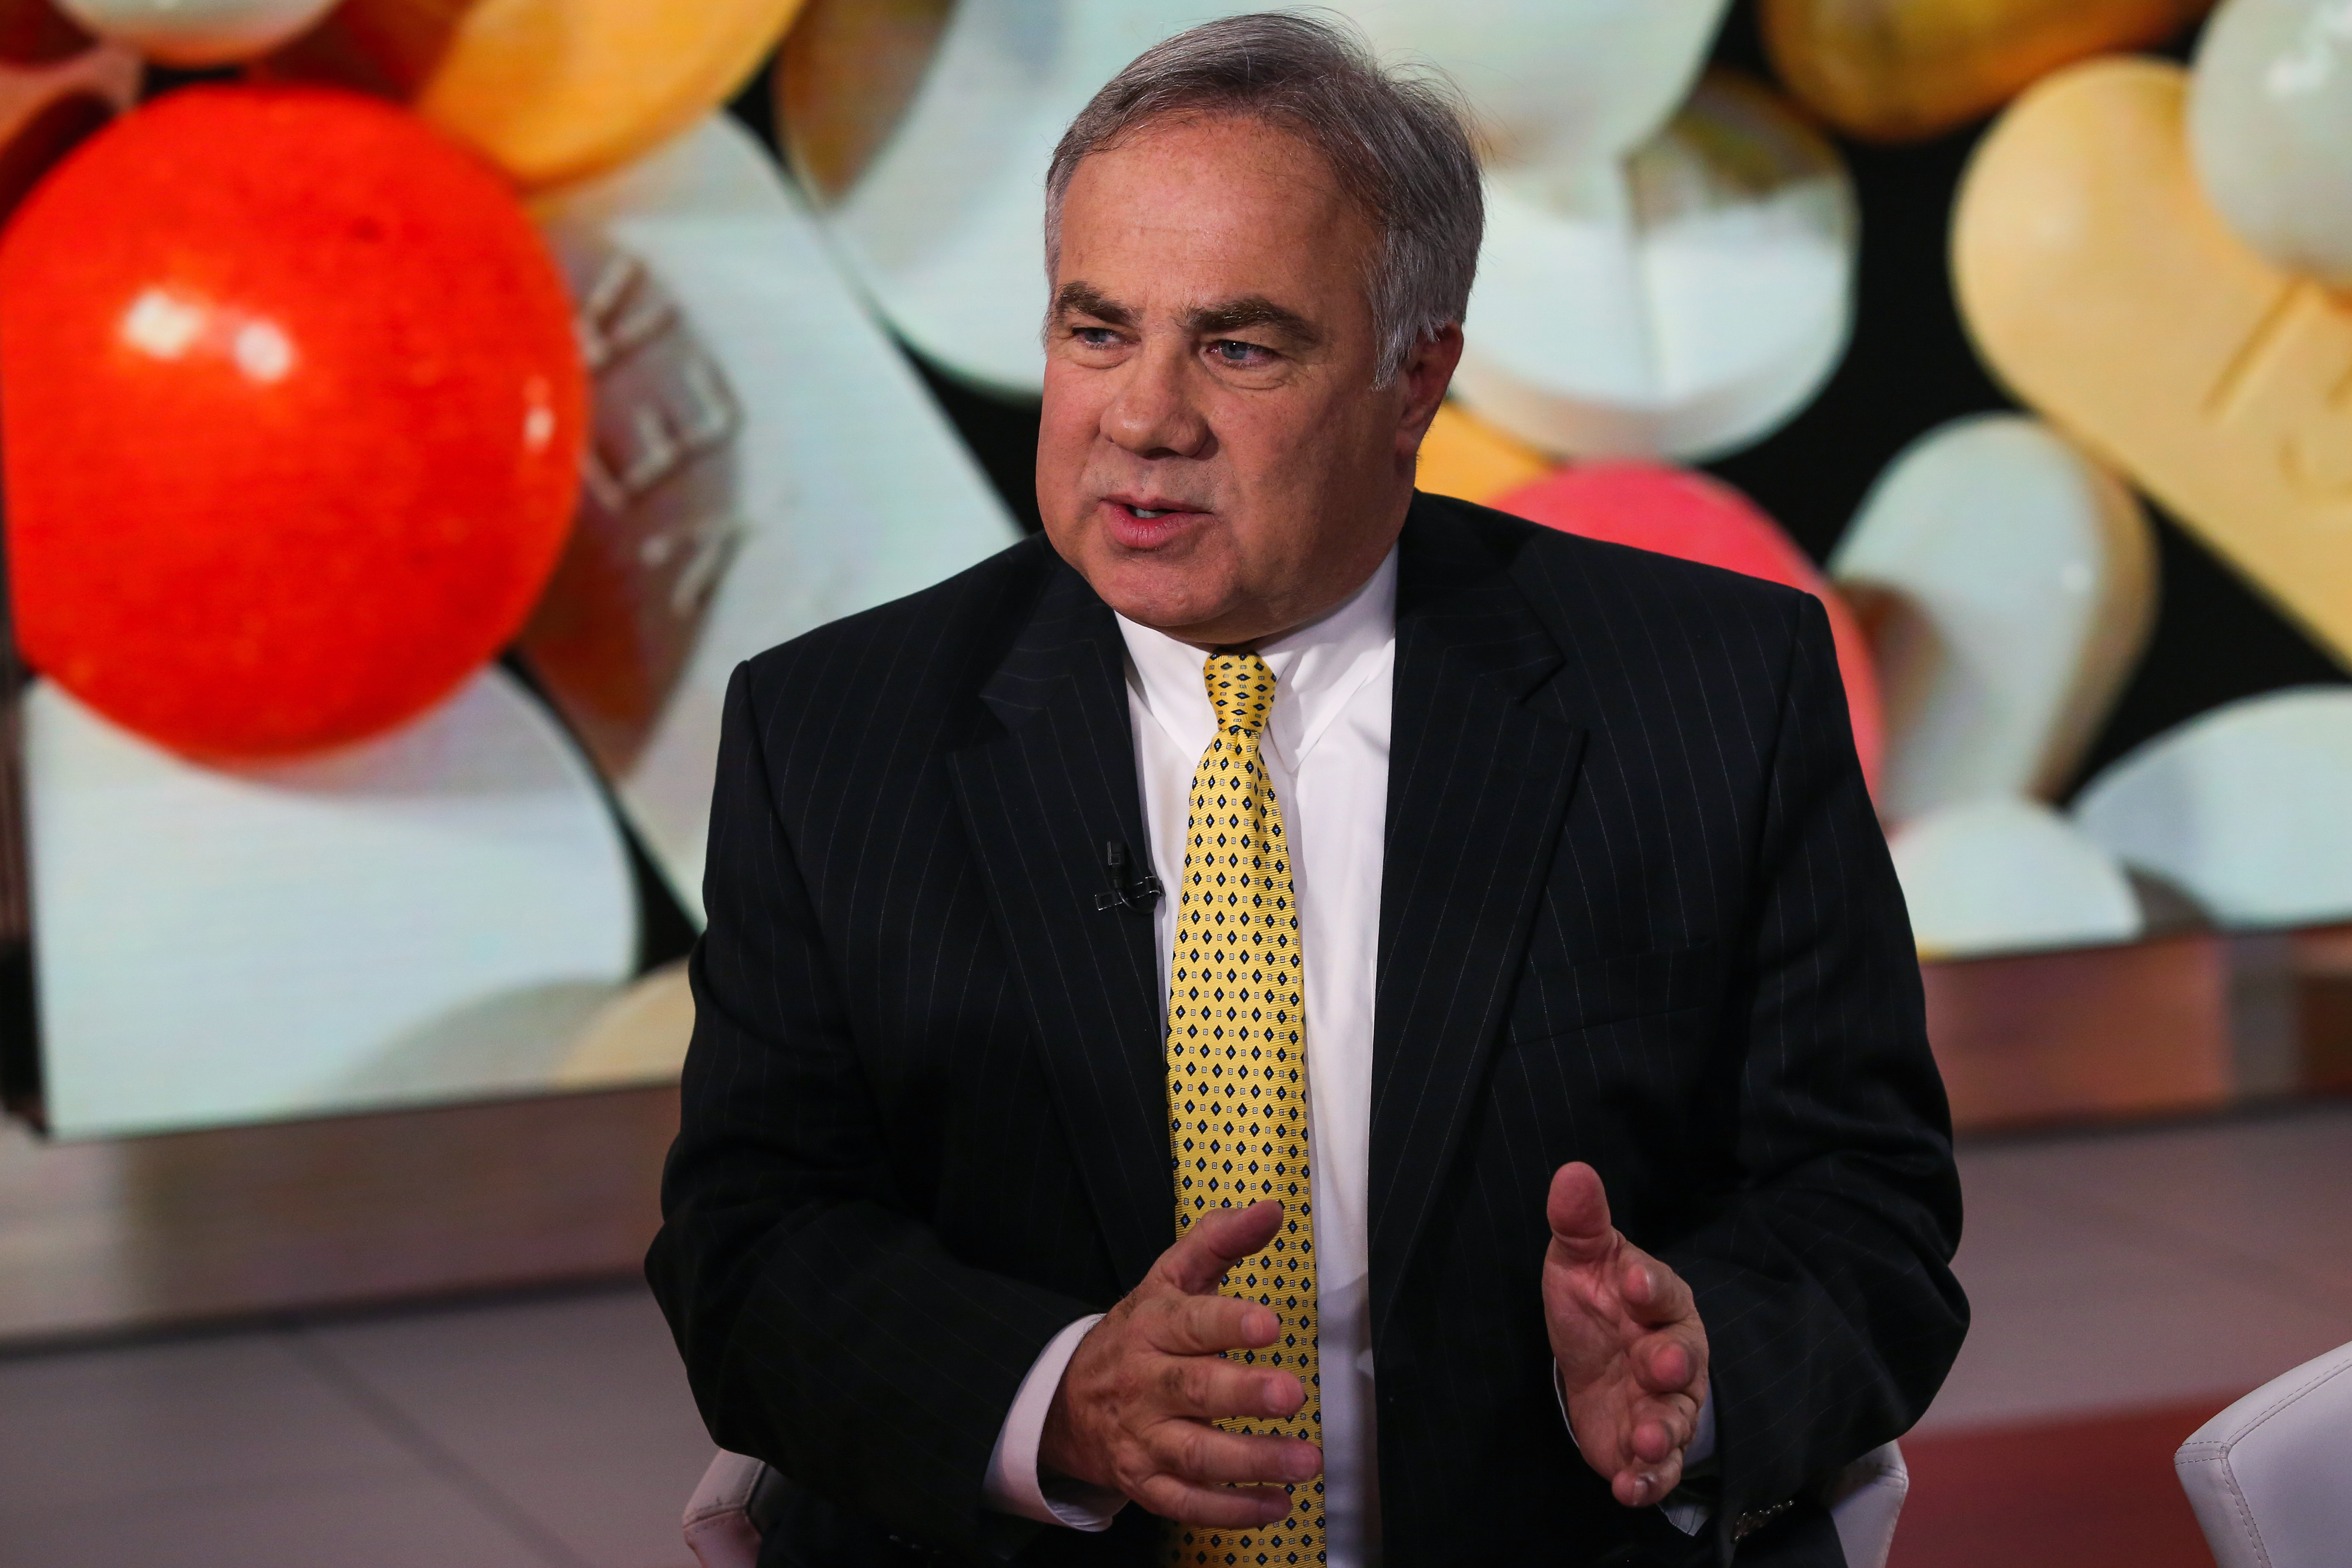 Joe Papa, now CEO of Valeant, speaking during a Bloomberg Television segment in late 2015.